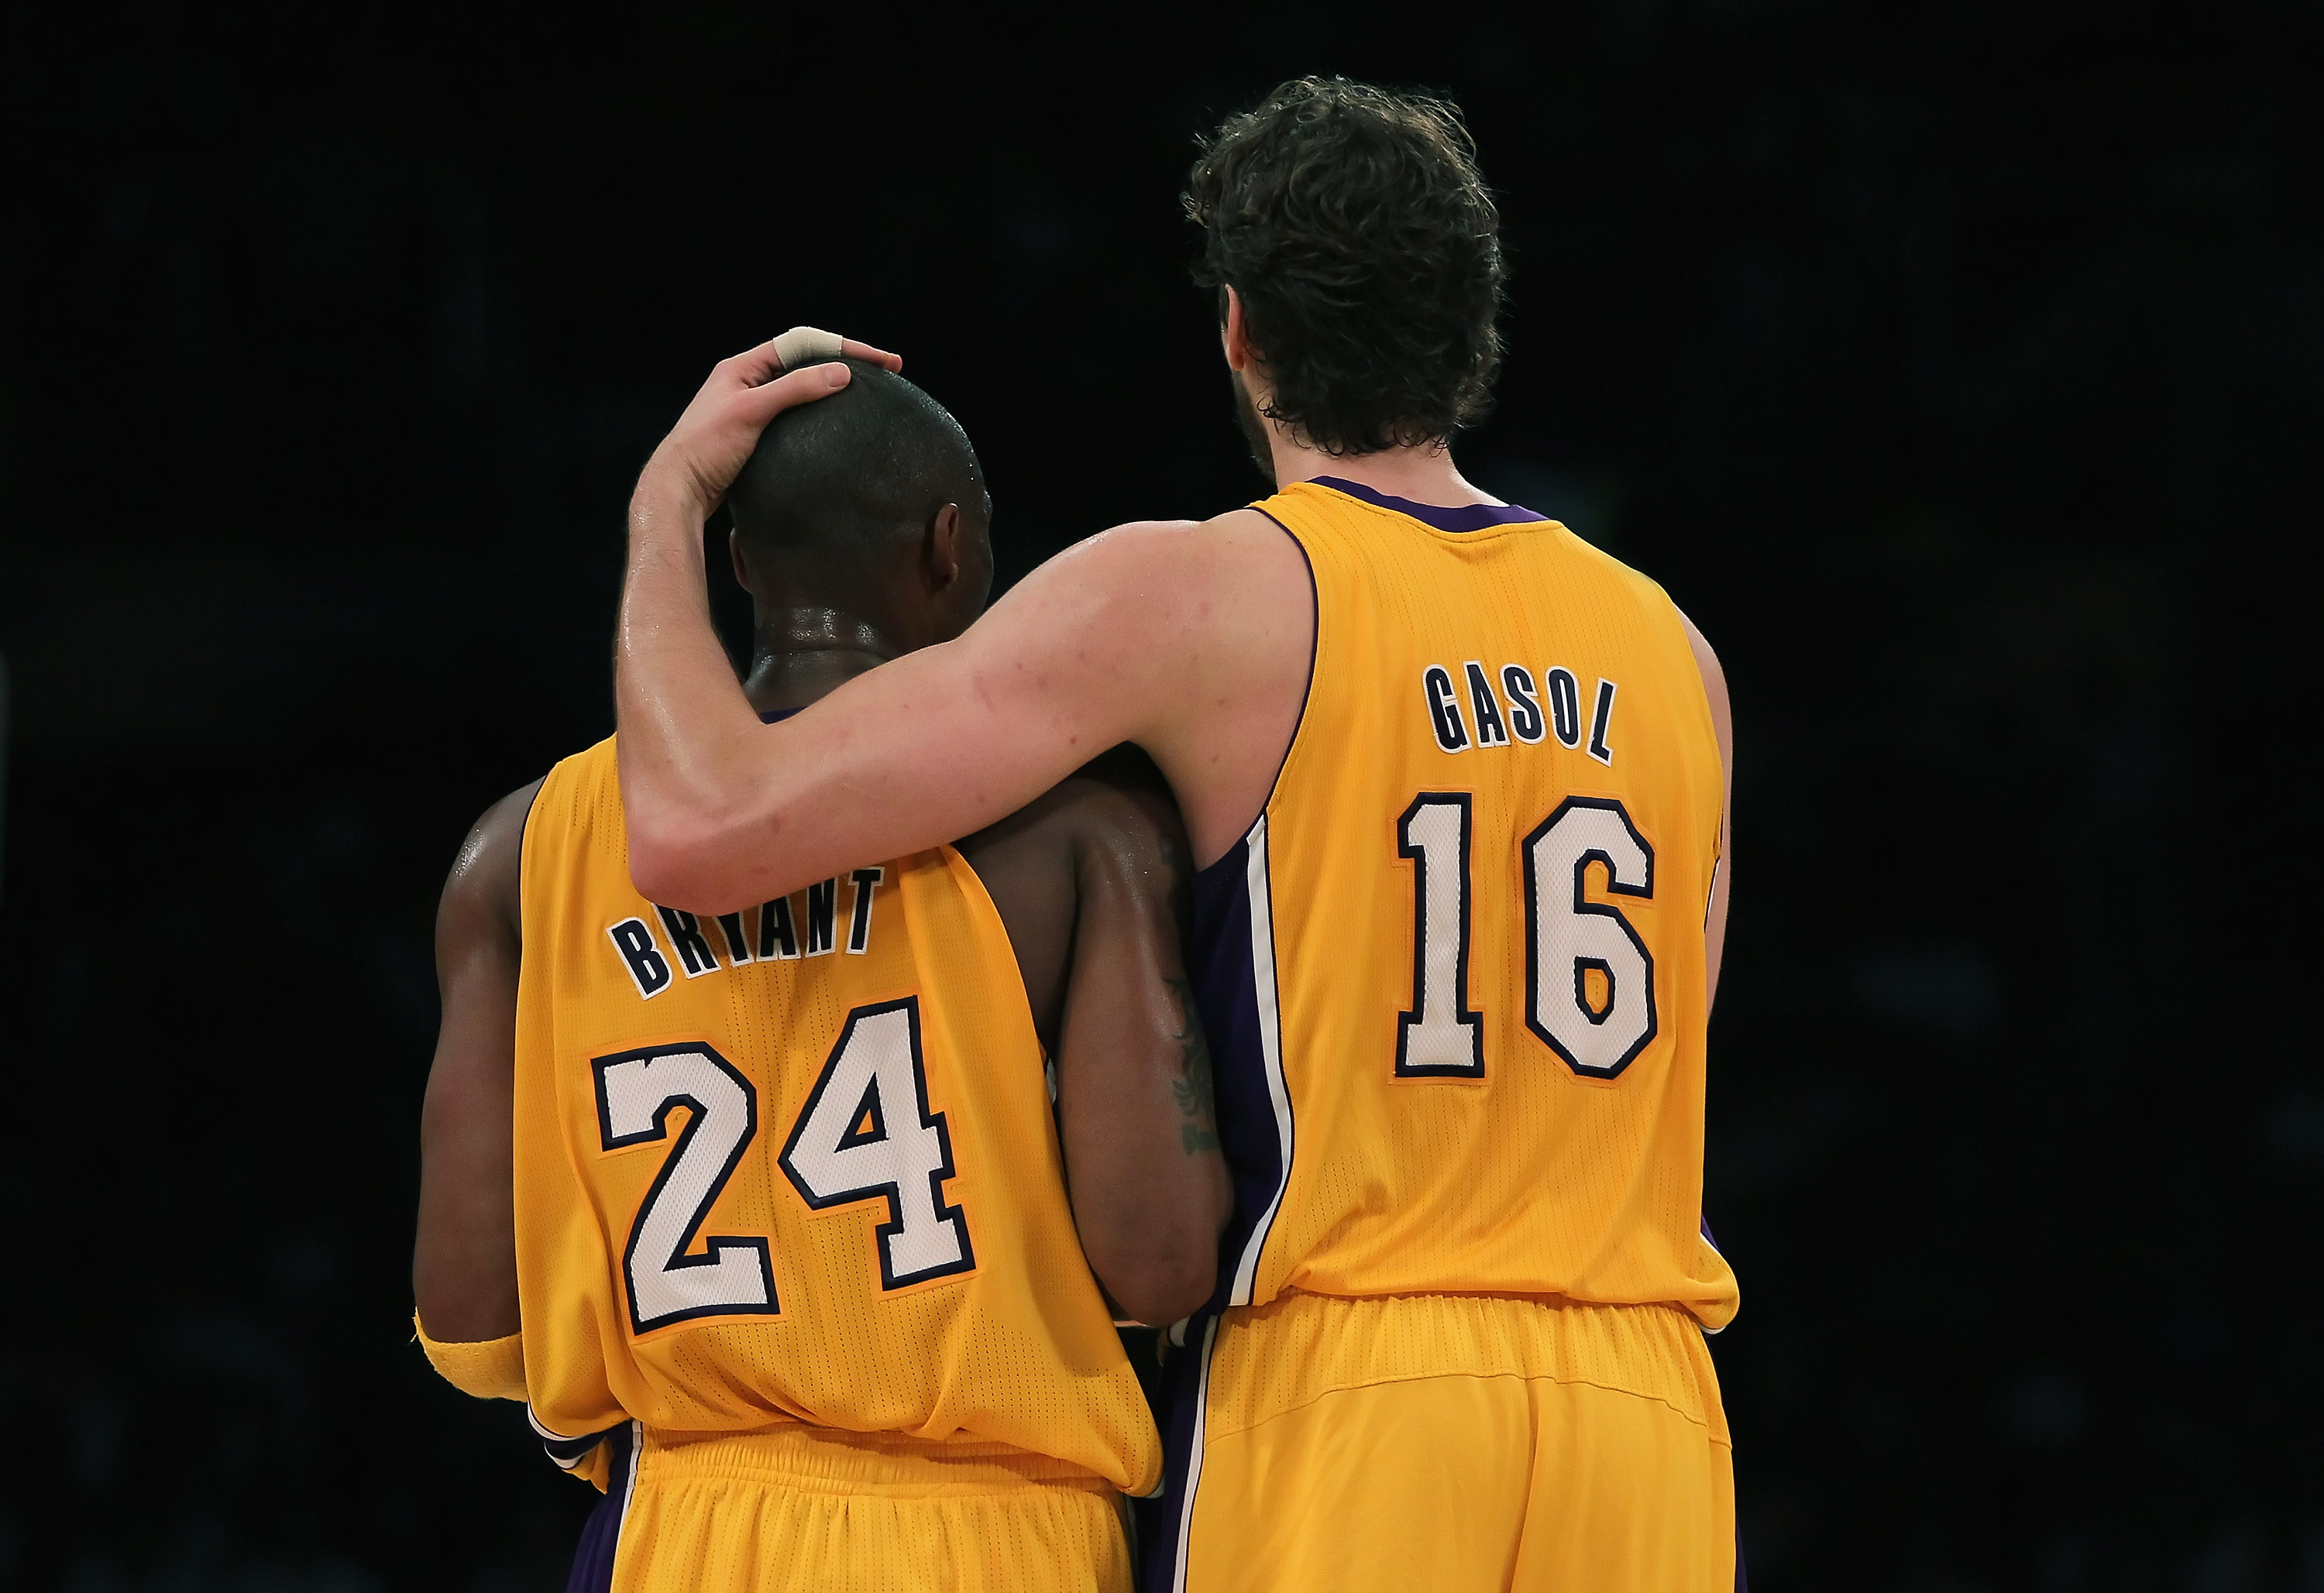 LOS ANGELES, CA - NOVEMBER 02:  Pau Gasol #16 of the Los Angeles Lakers puts his arm around teammate Kobe Bryant #24 during the third quarter against the Memphis Grizzlies at Staples Center on November 2, 2010 in Los Angeles, California. The Lakers defeat